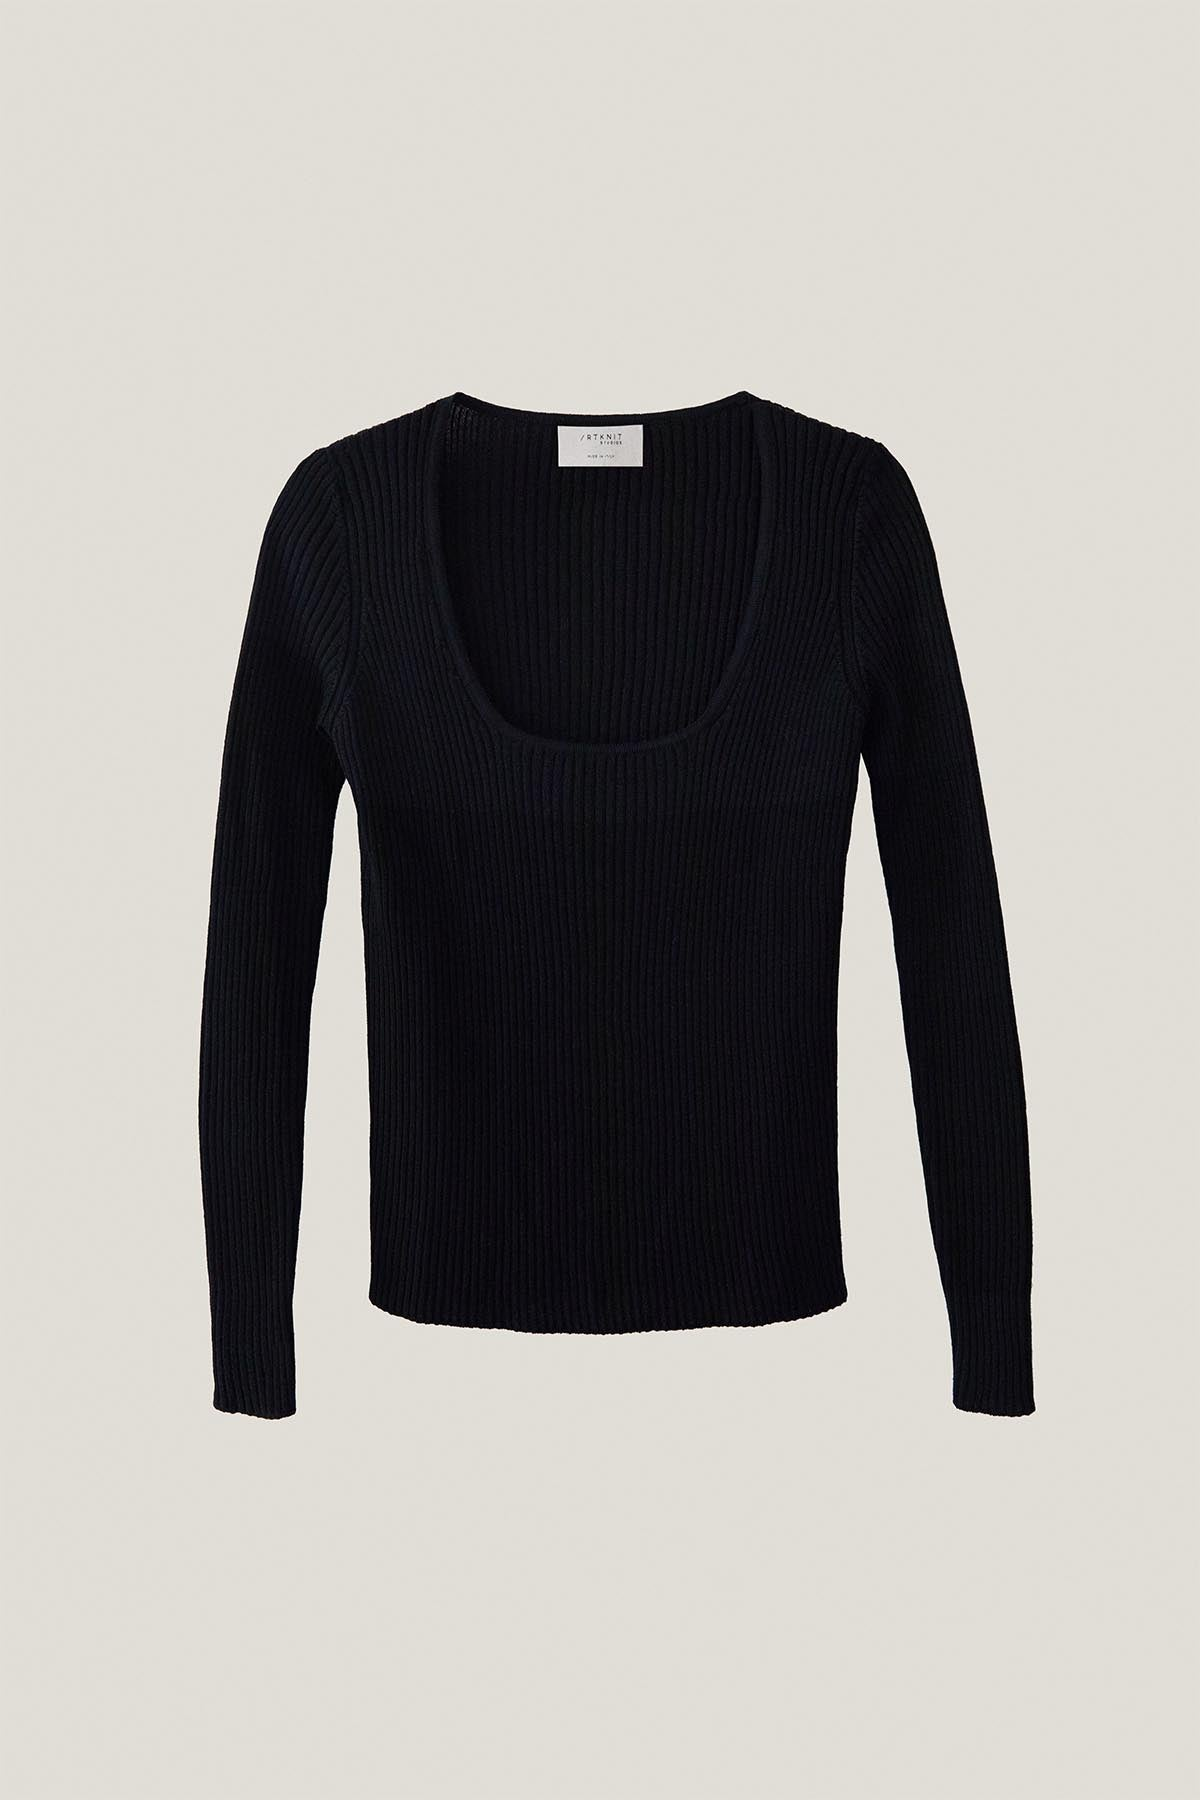 The Merino Wool U-Neck Sweater- Black